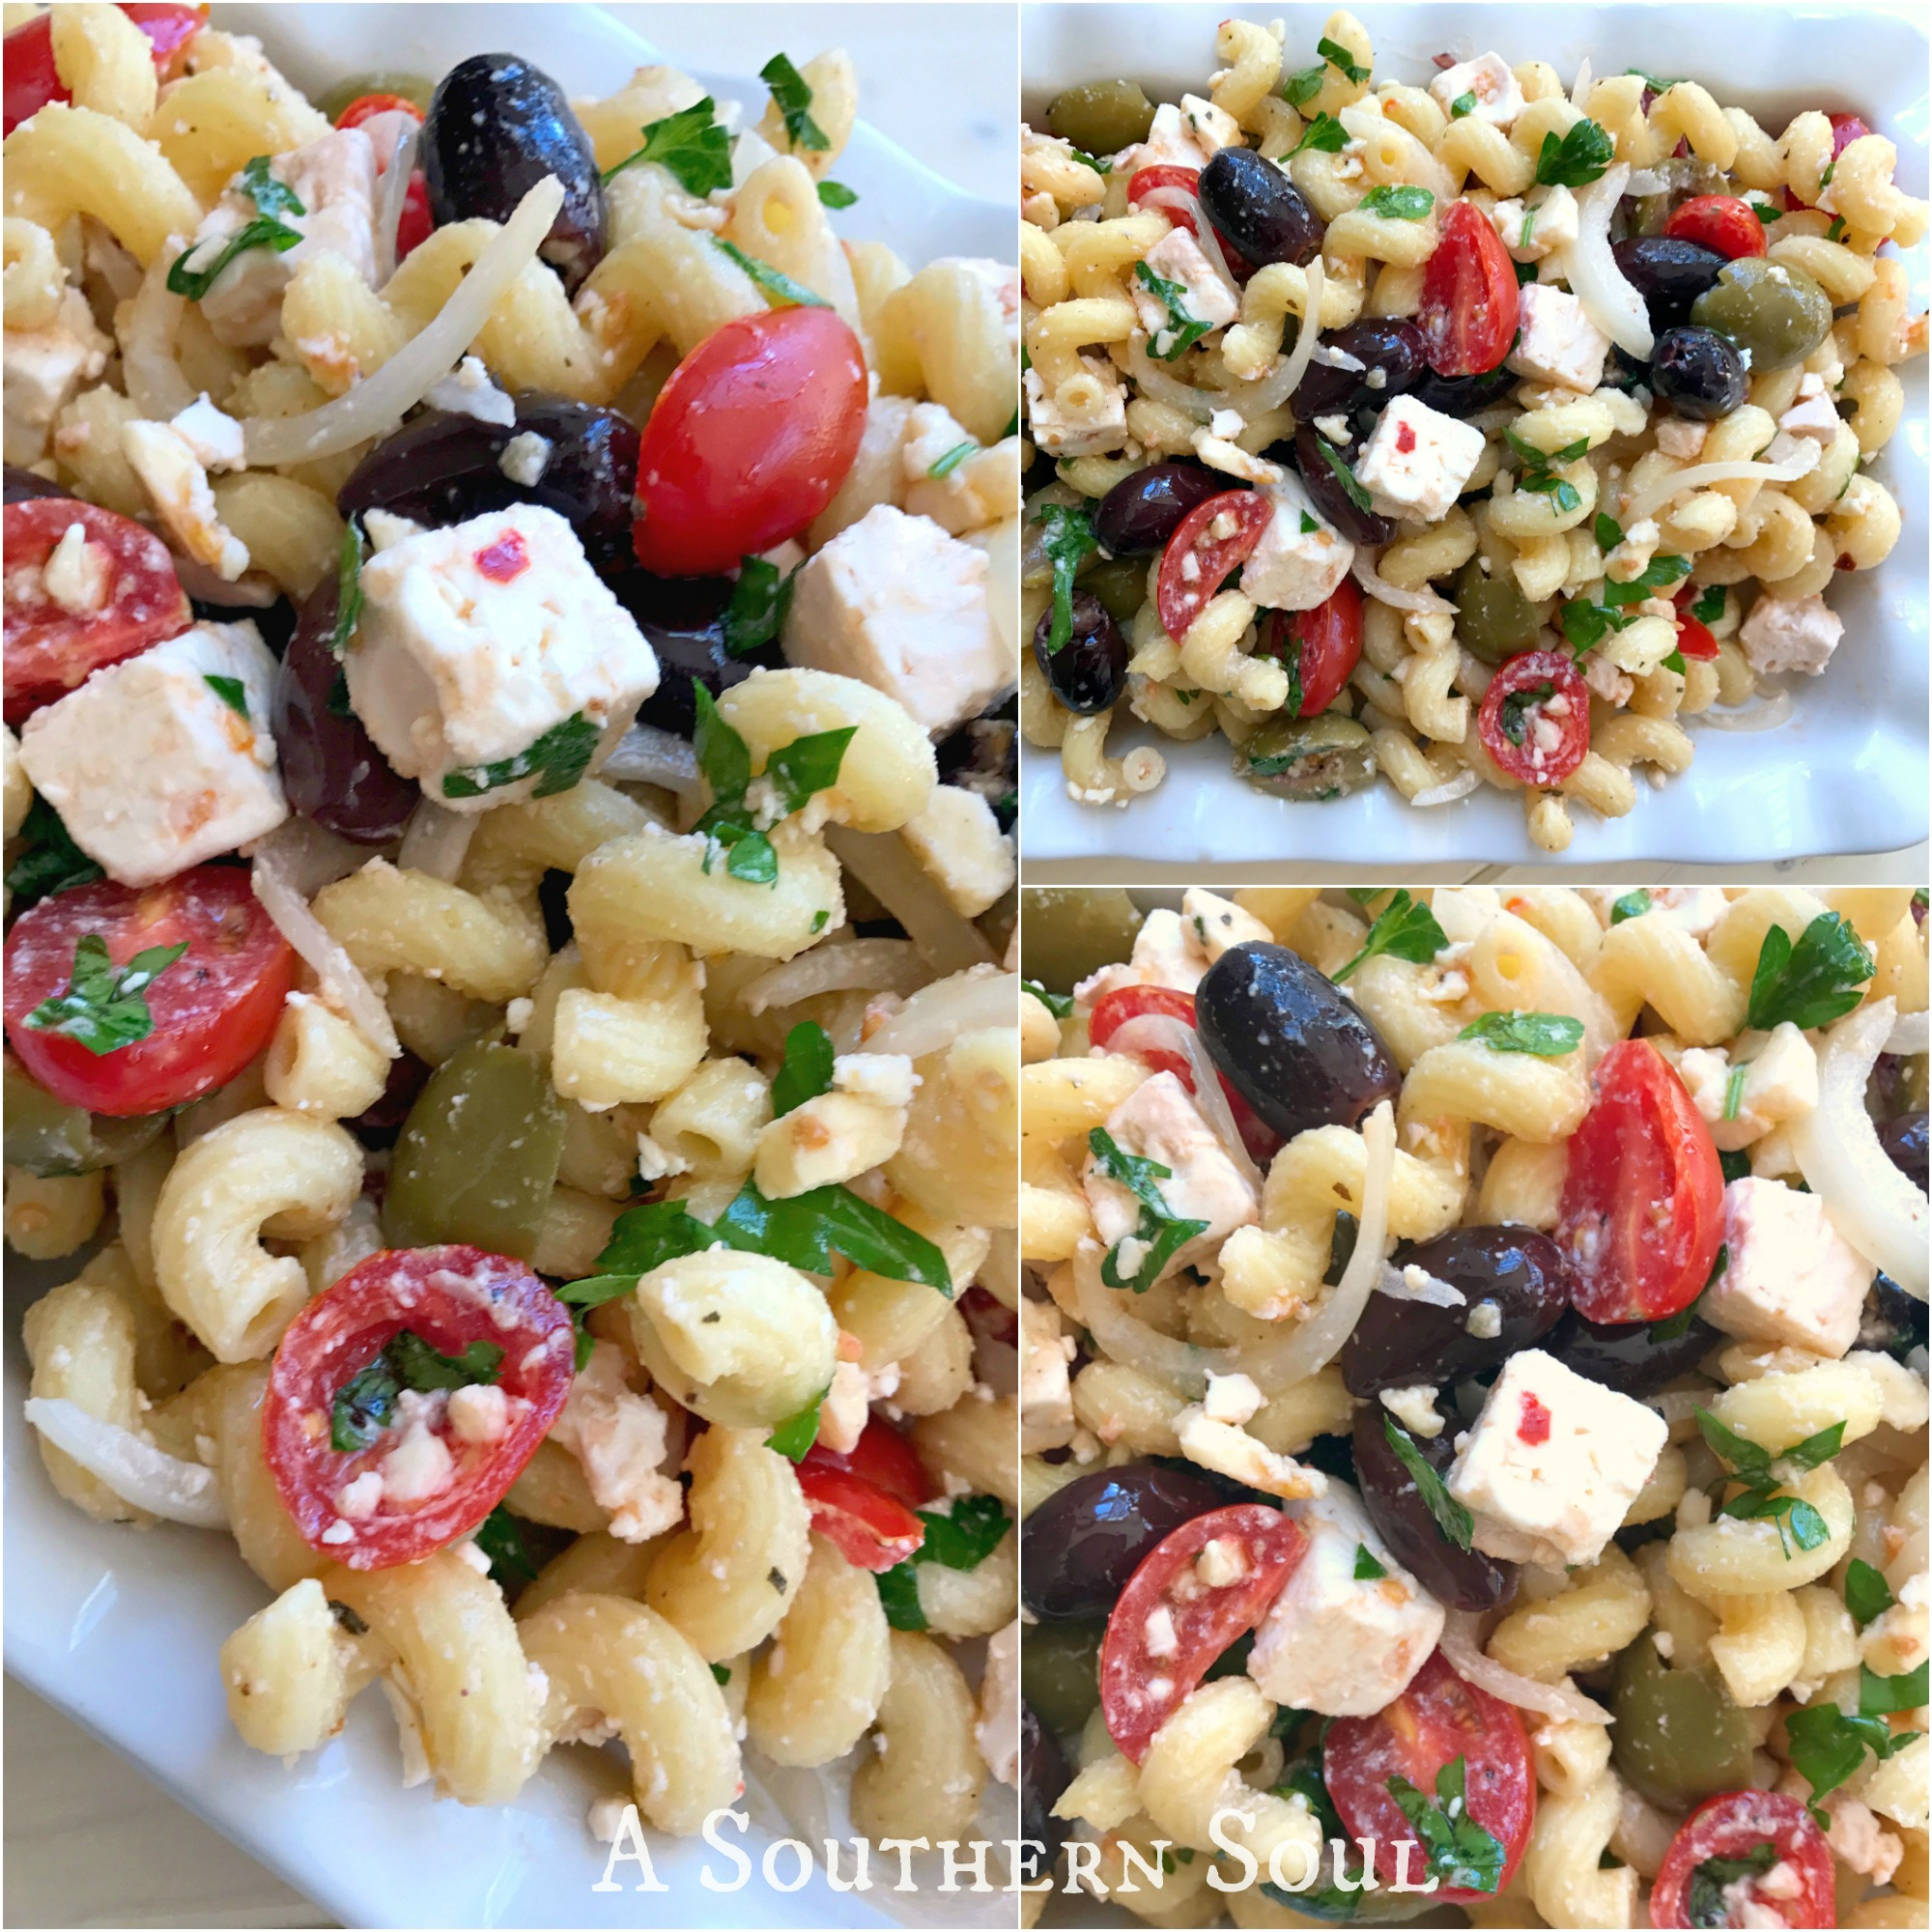 Greek salad with olives and feta